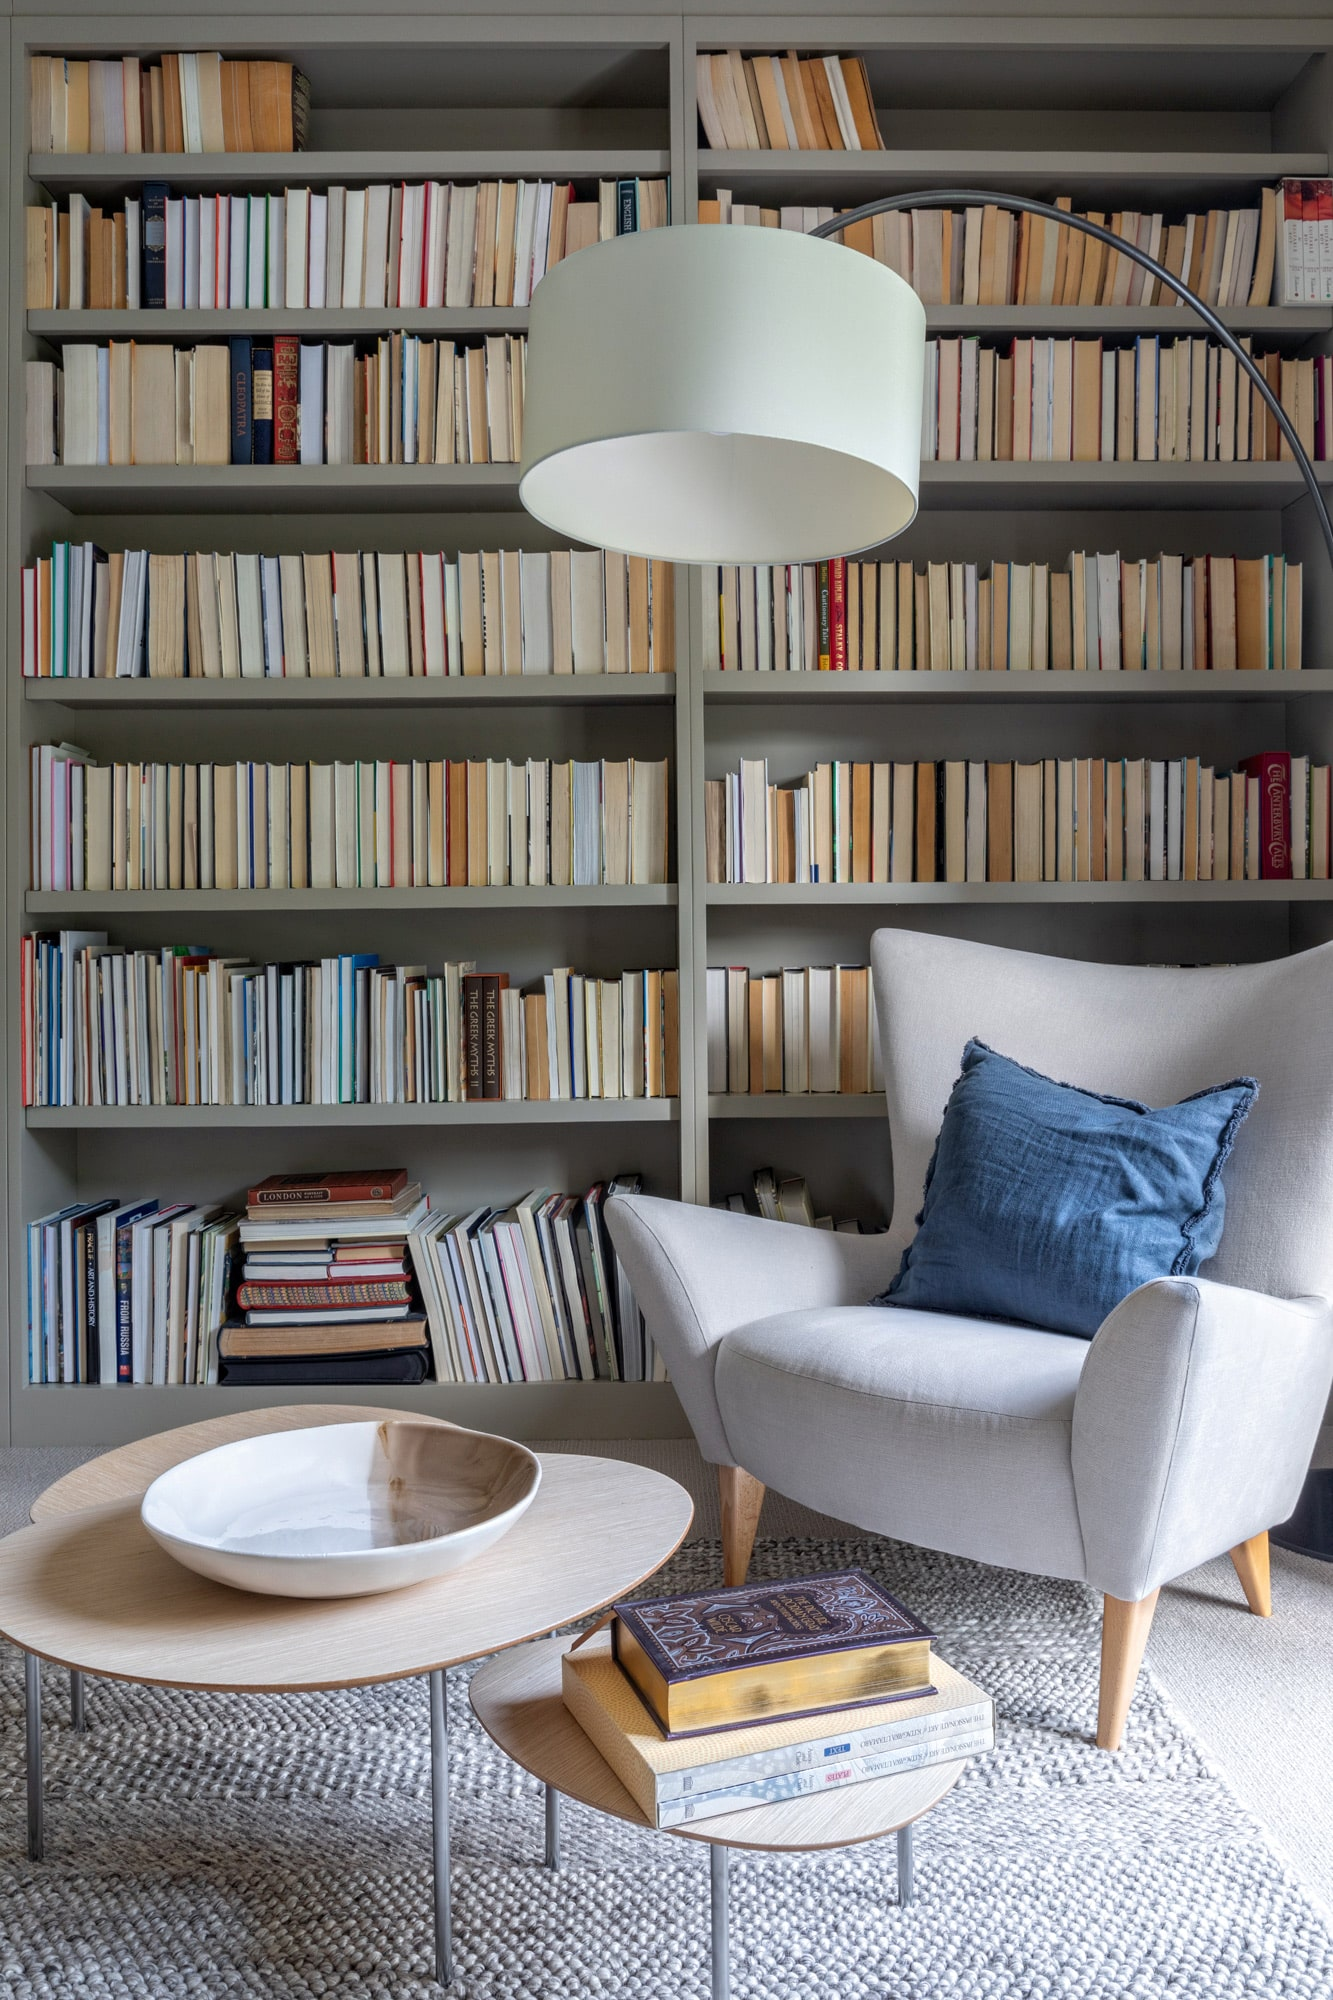 Interior photo: library in a country house; shelves with books, a high standing lamp, a grey armchair and a coffee table